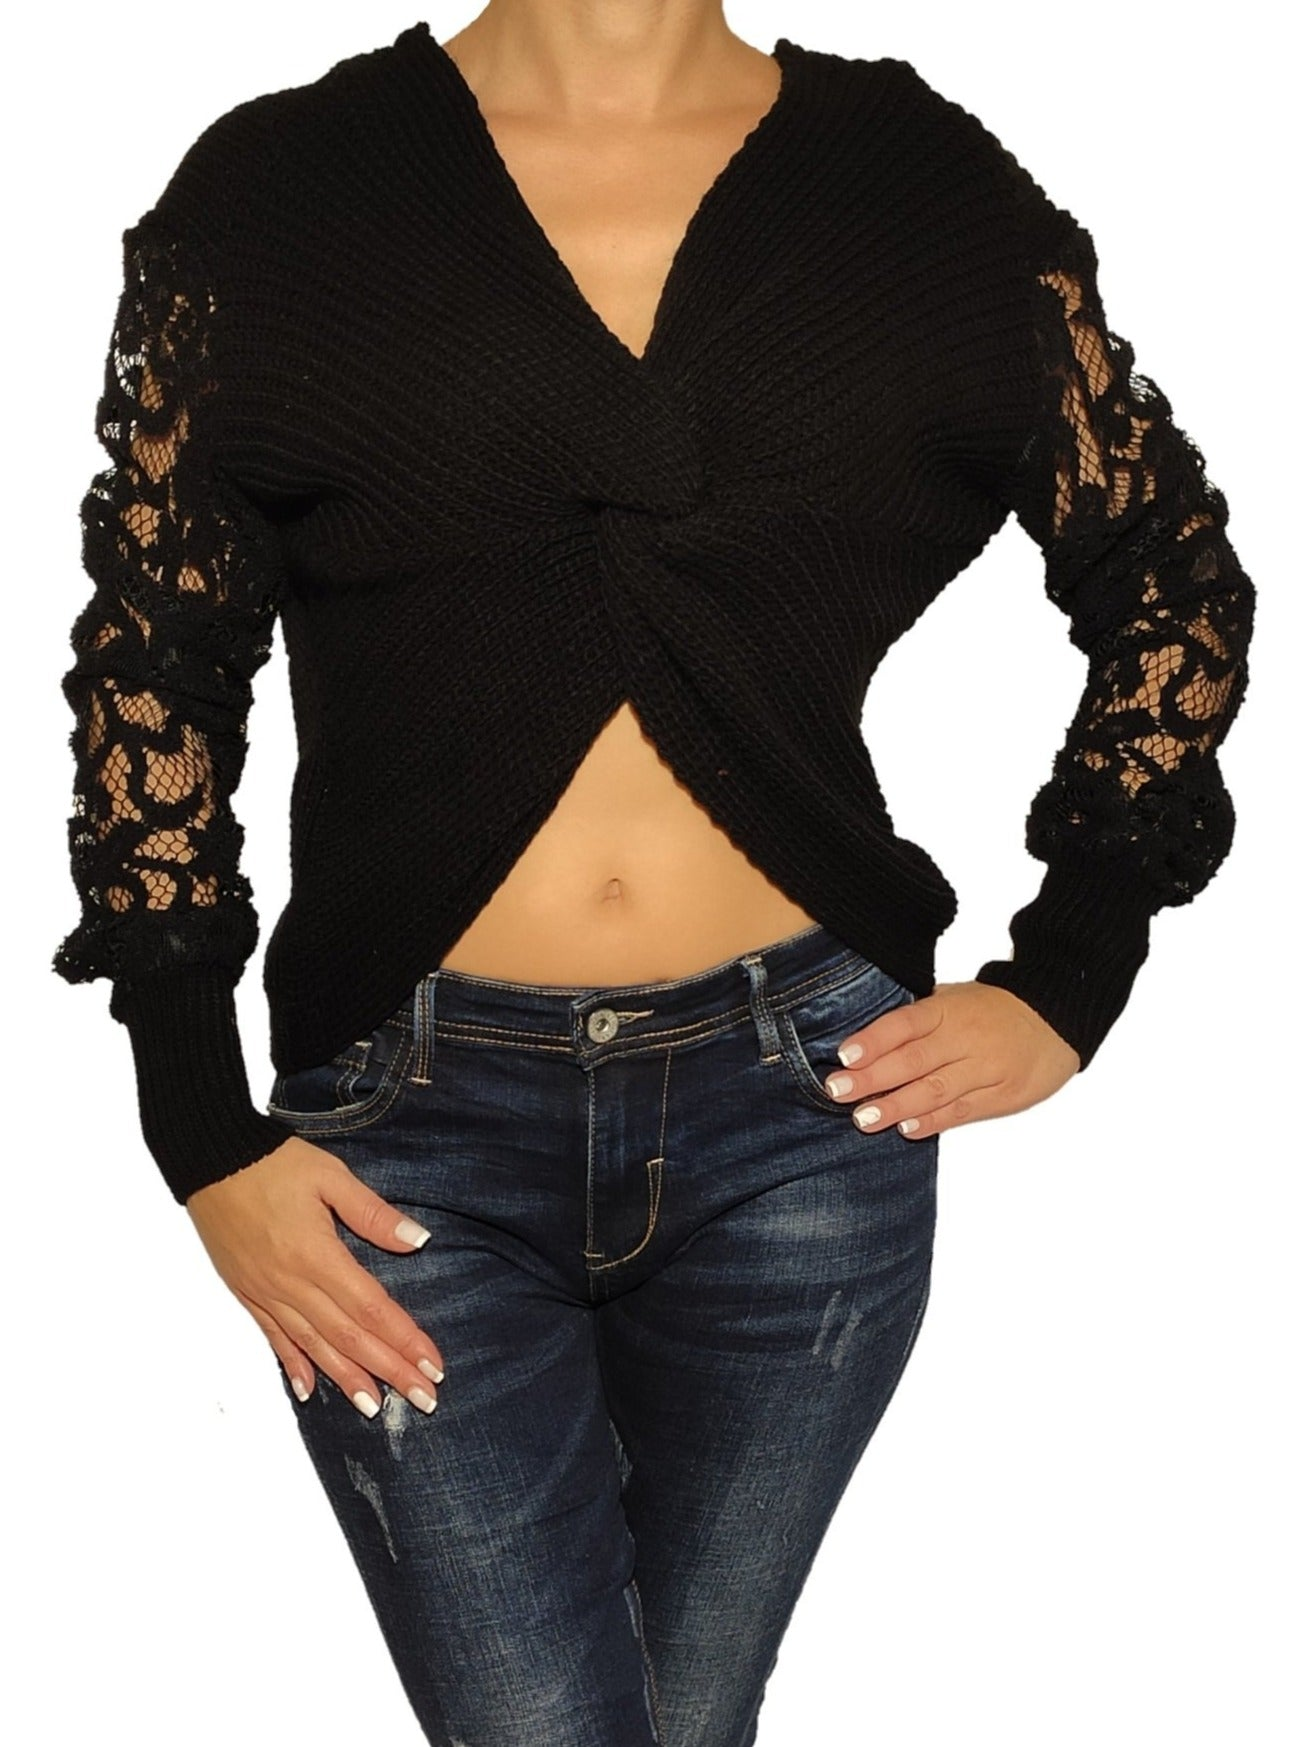 woman-wears-a-knit-blouze-with-laces-black